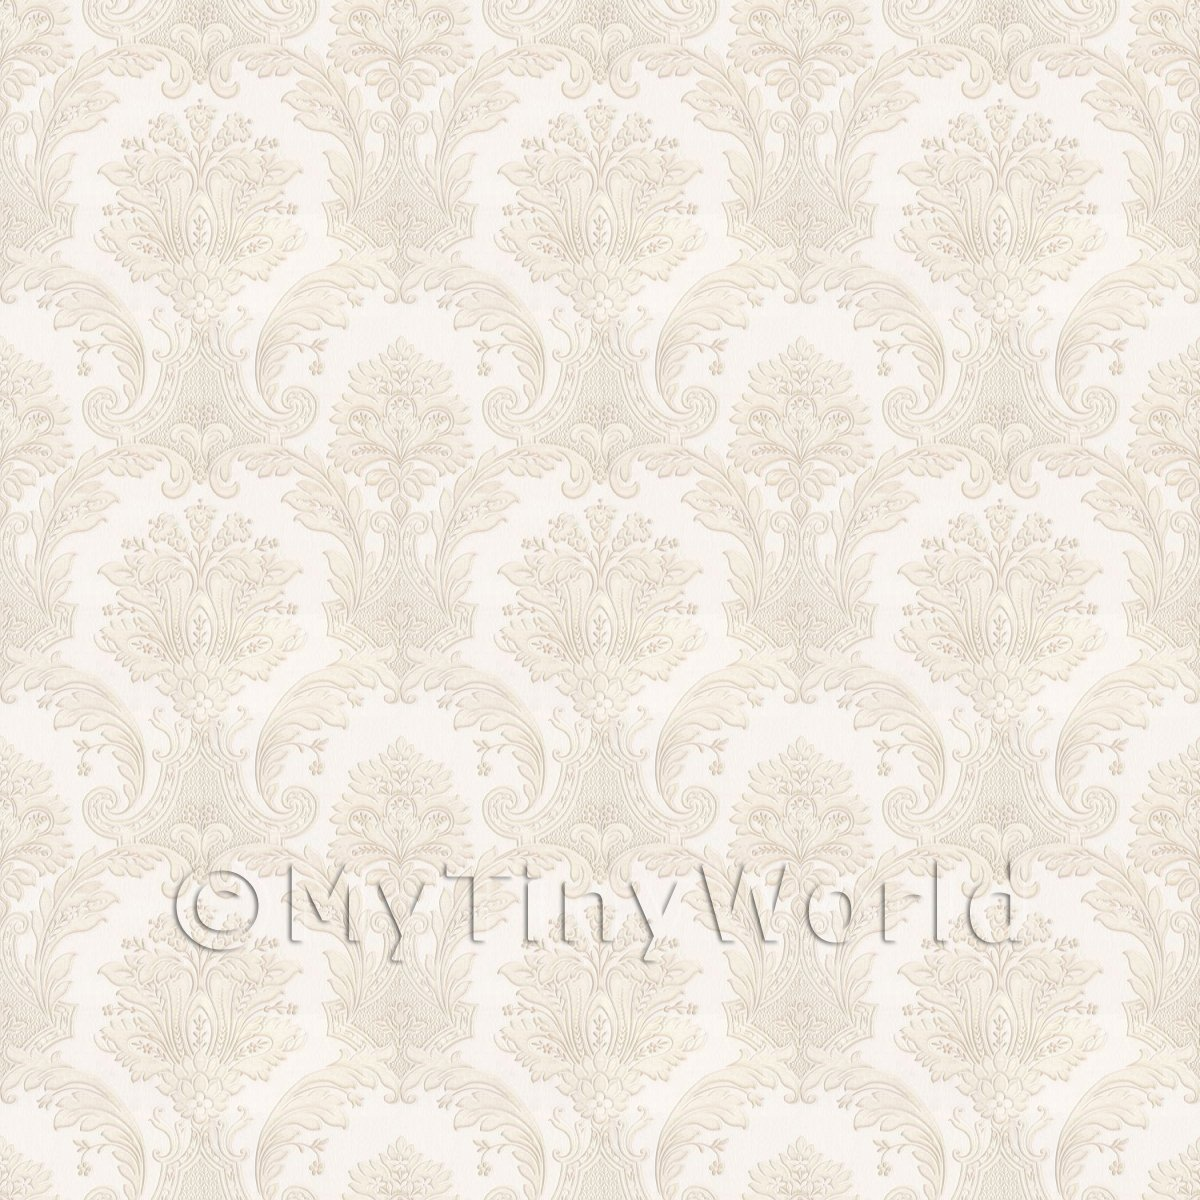 Pack of 5 Dolls House Cream Damask Style Wallpaper Sheets